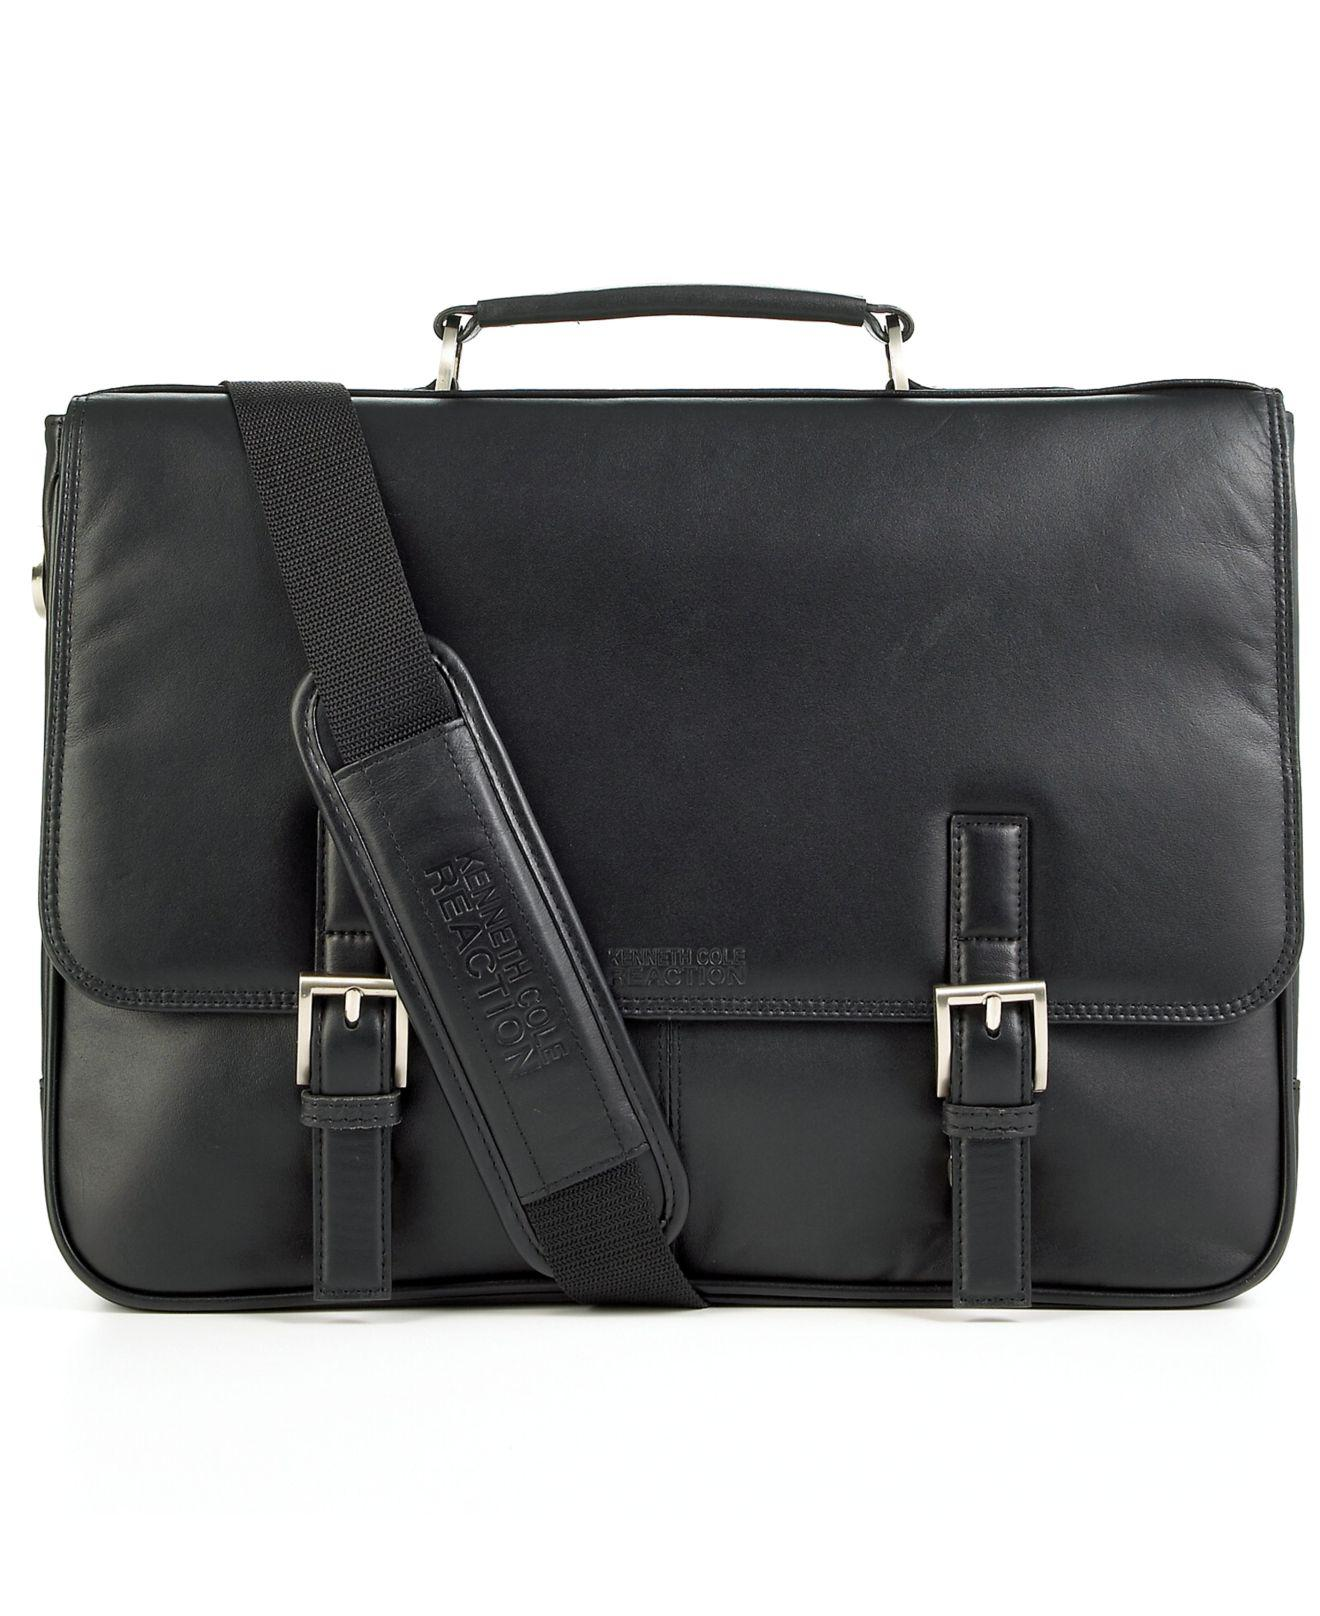 ec61c07f39 Lyst - Kenneth Cole Reaction Kenneth Cole Single Gusset Expandable ...